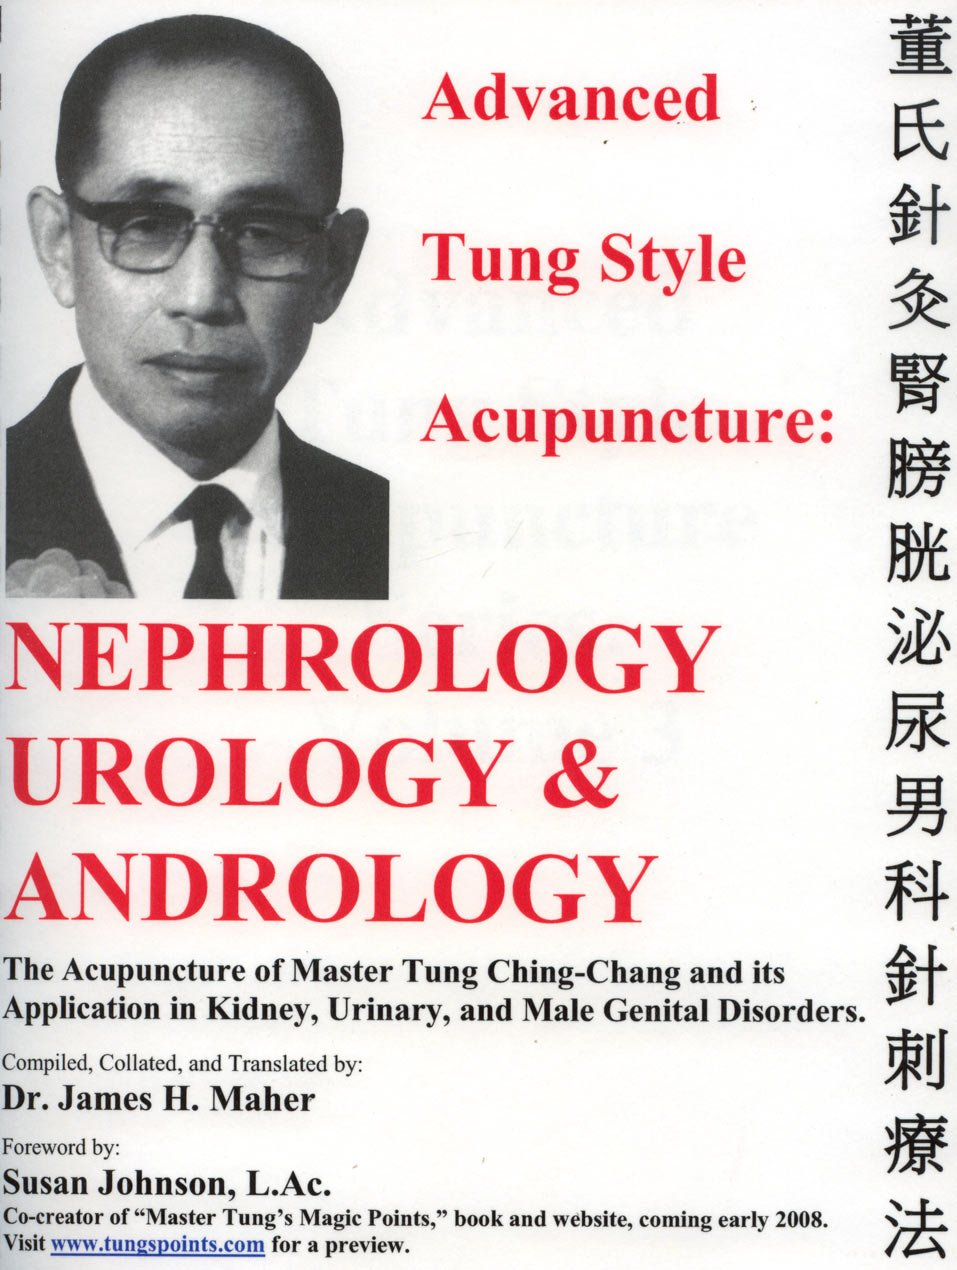 Advanced Tung Style Acupuncture Vol. 3: Nephrology, Urology & Andrology:  Ching-Chang Tung, James Maher: 9780975909645: Amazon.com: Books